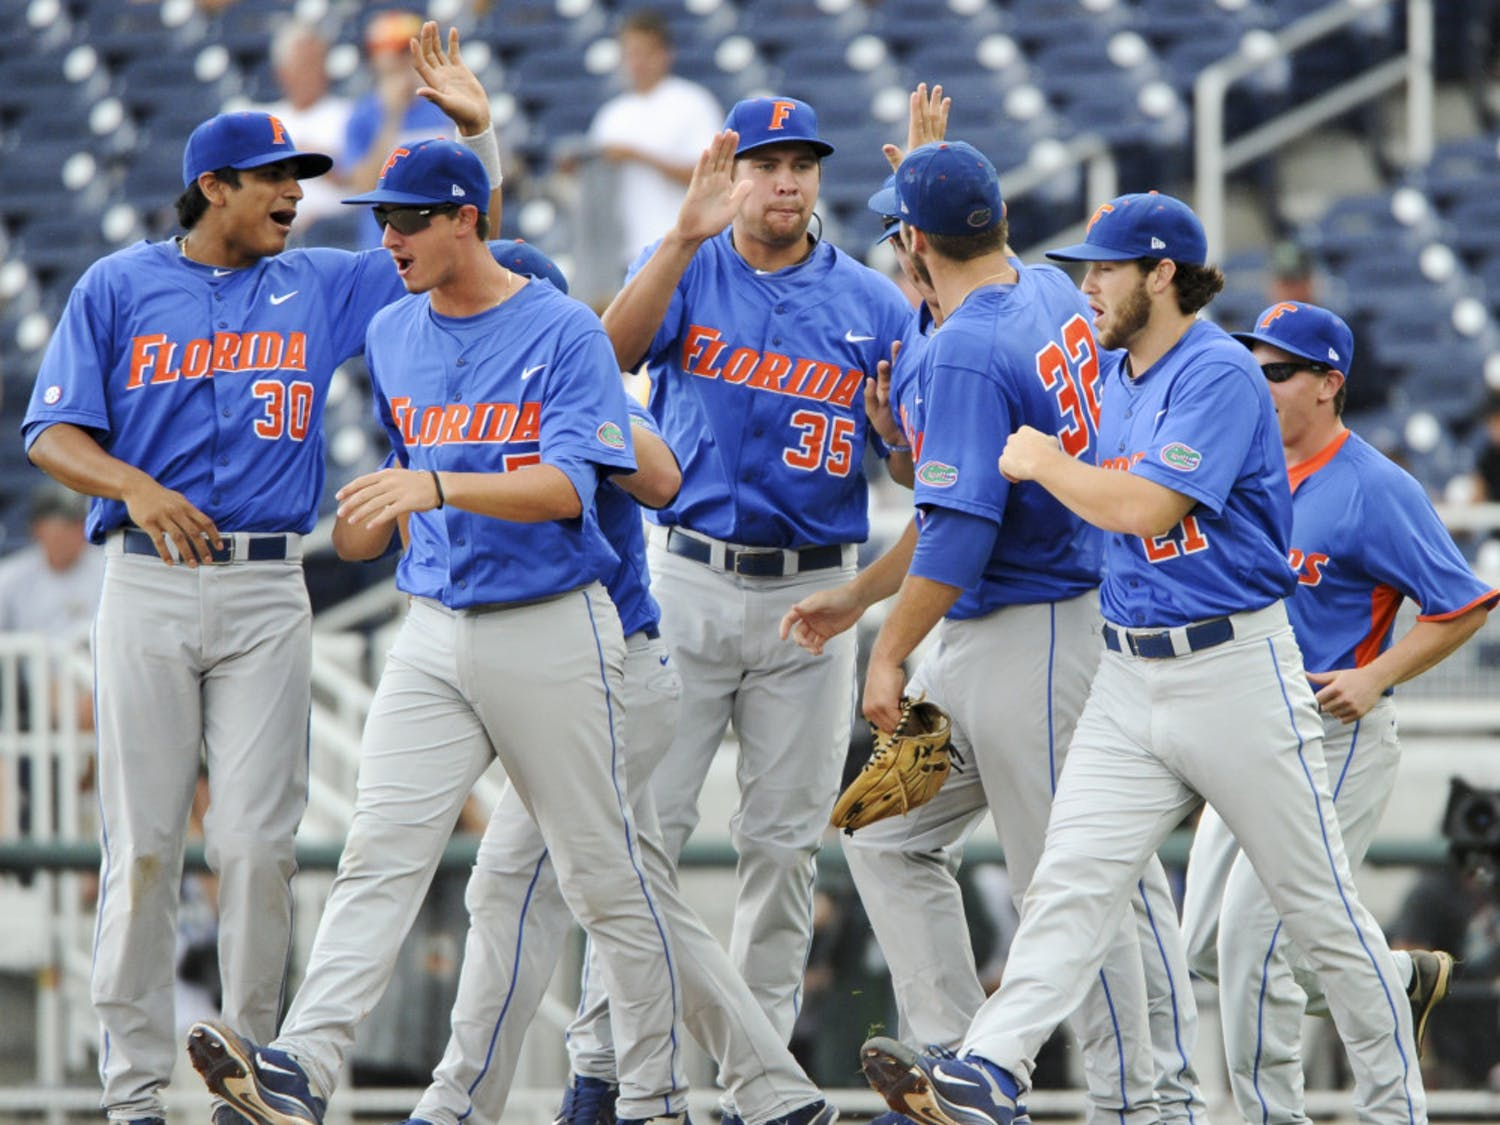 Florida celebrates after beating Vanderbilt 3-1 in a weather-delayed College World Series contest. The Gators dropped their SEC foes for the fourth time in five tries.